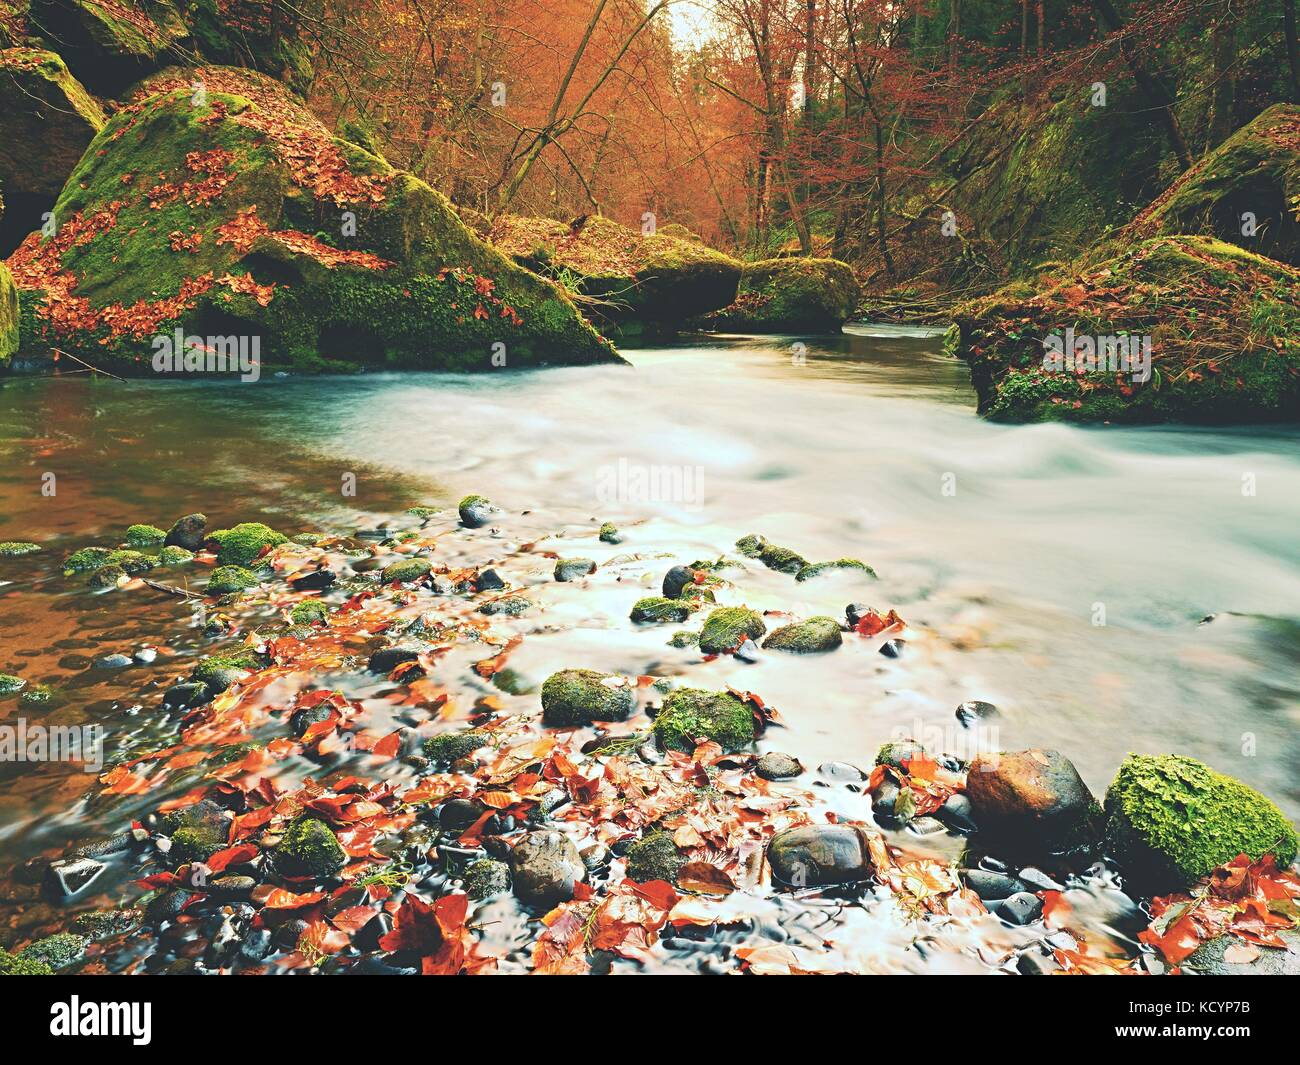 Stony bank of autumn mountain river covered by orange beech leaves. Fresh colorful leaves on branches above water - Stock Image